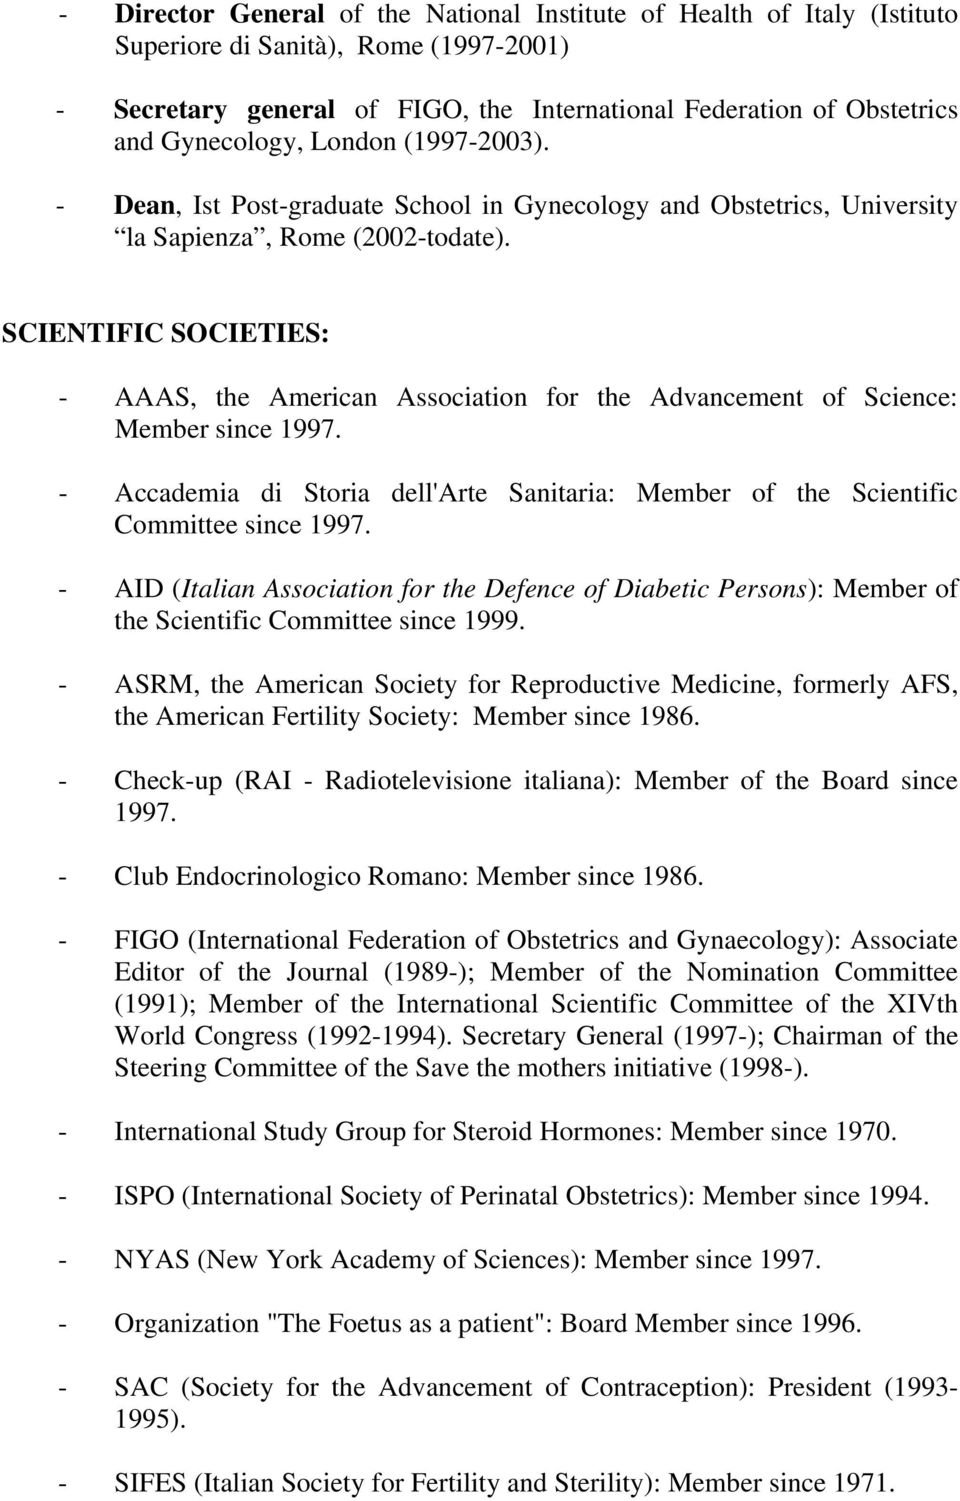 SCIENTIFIC SOCIETIES: - AAAS, the American Association for the Advancement of Science: Member since 1997. - Accademia di Storia dell'arte Sanitaria: Member of the Scientific Committee since 1997.